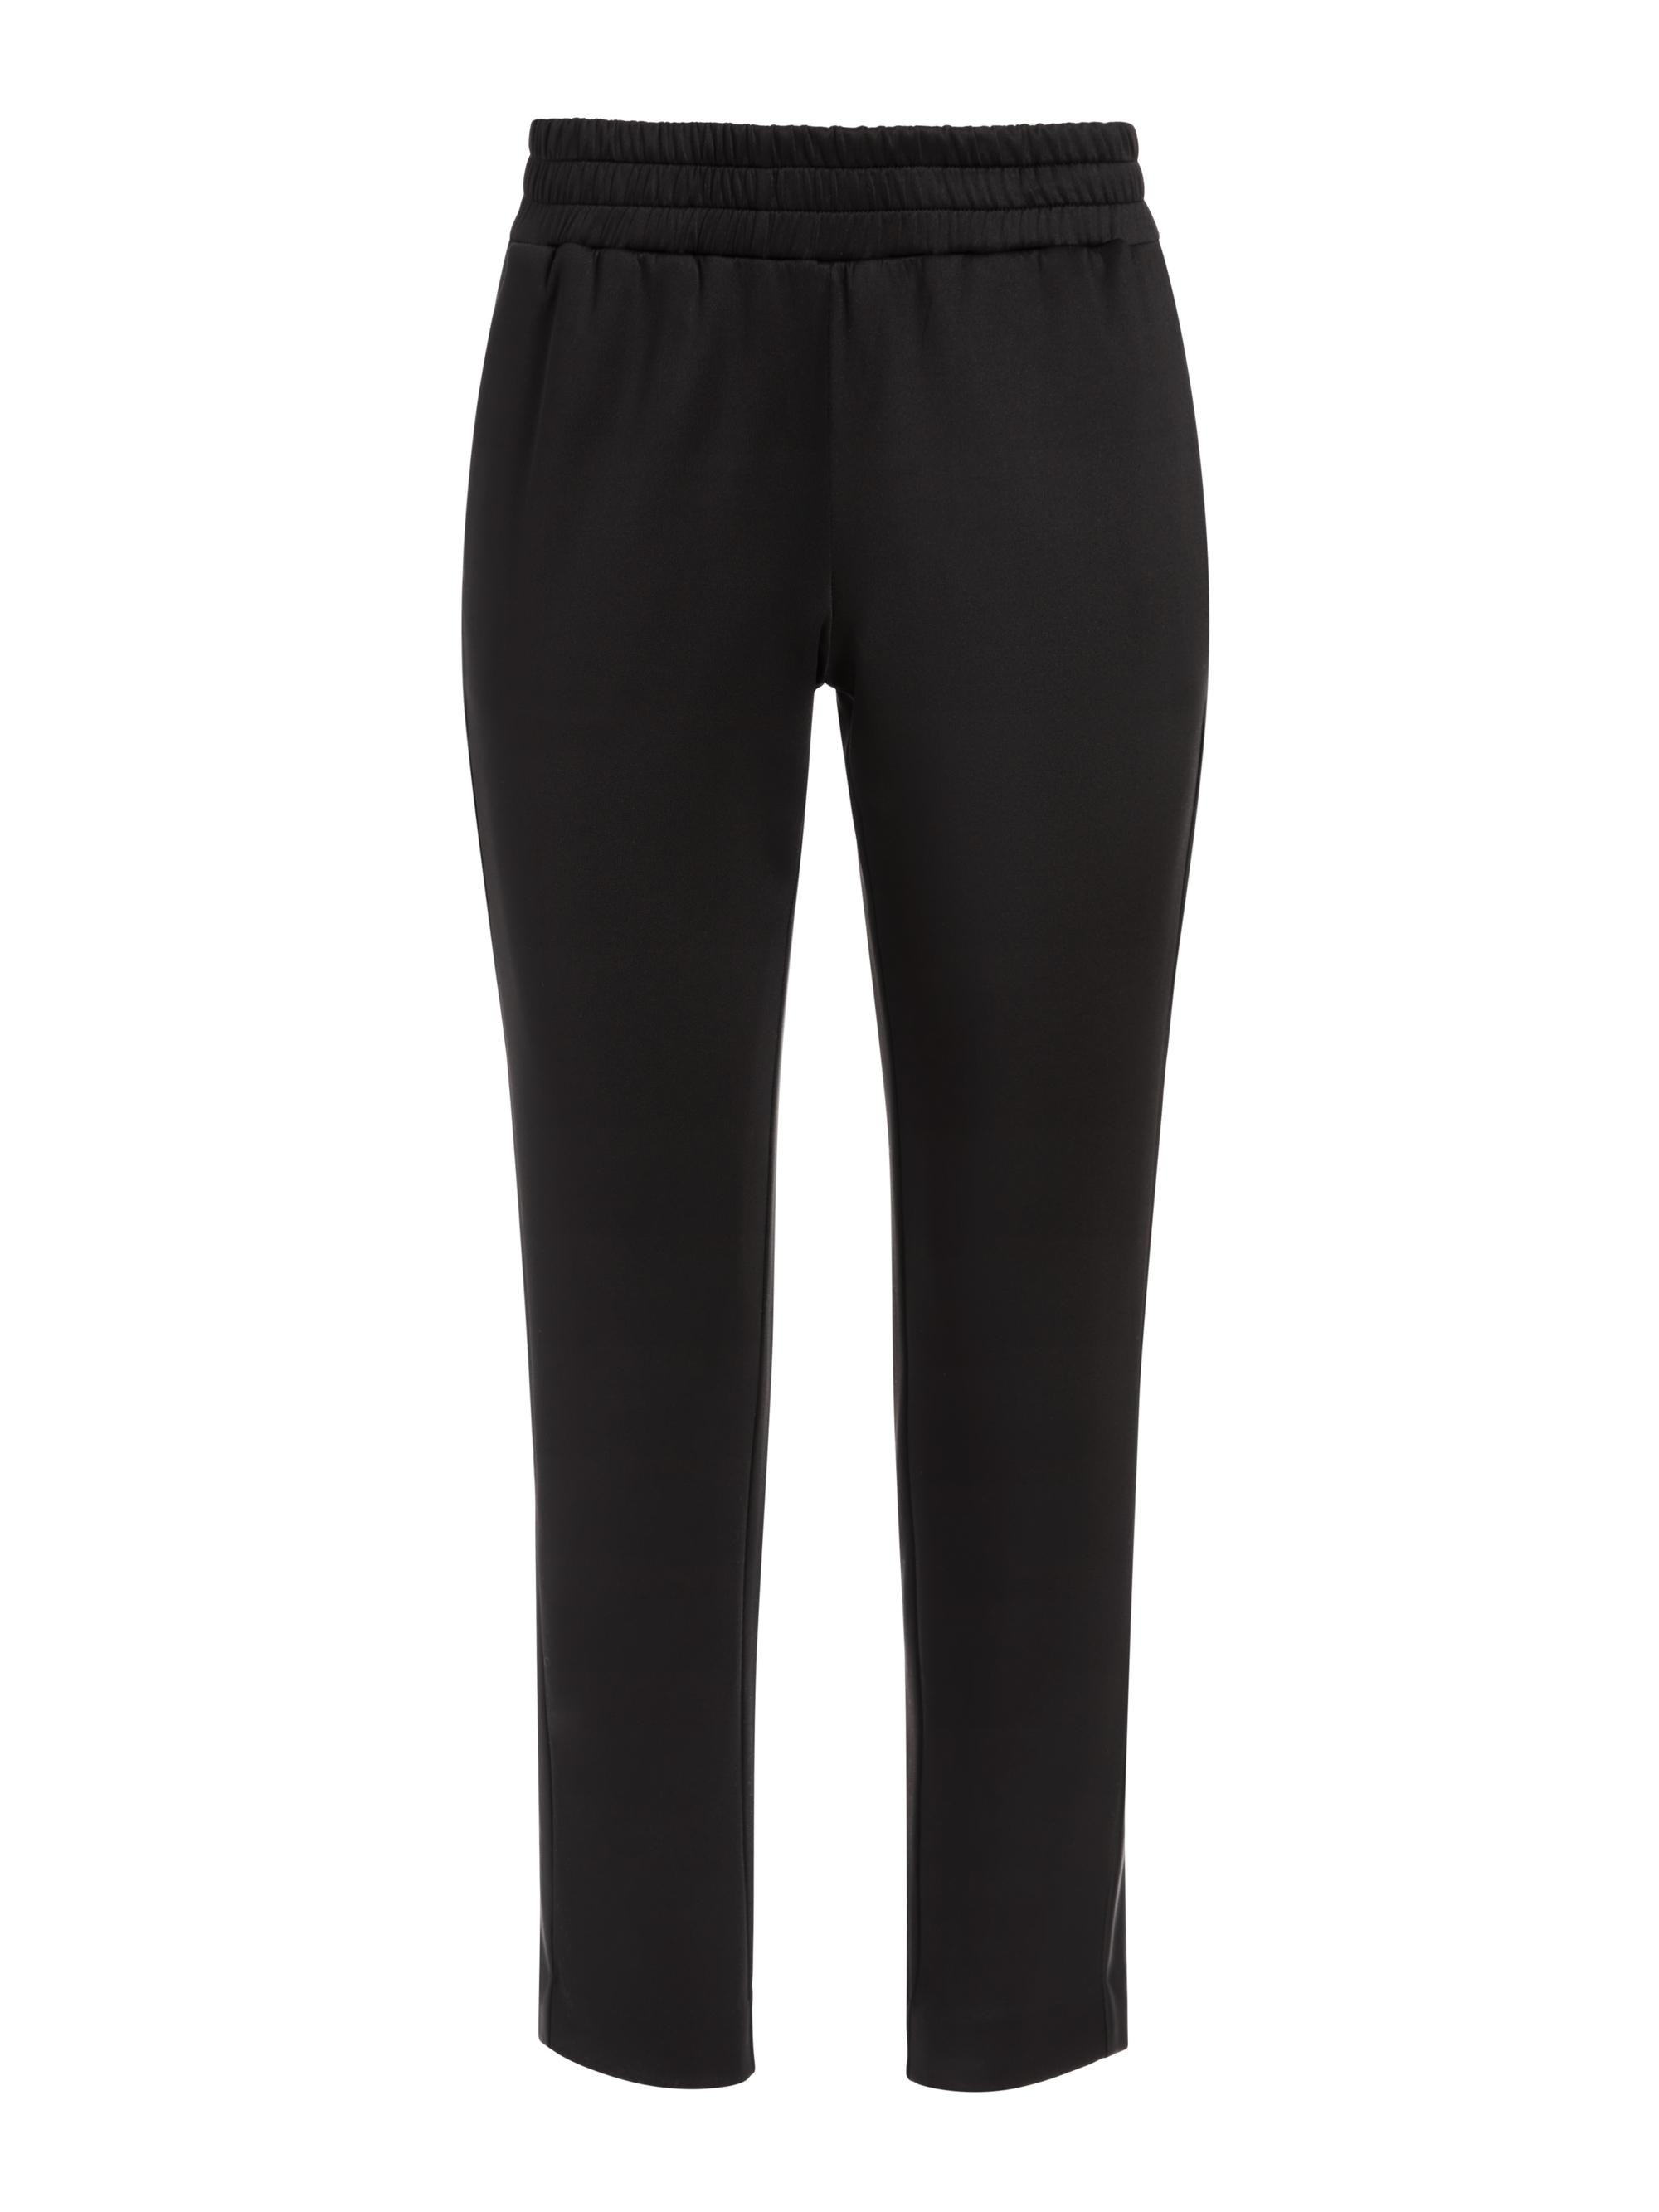 BENNY TAPERED PULL ON PANT 5